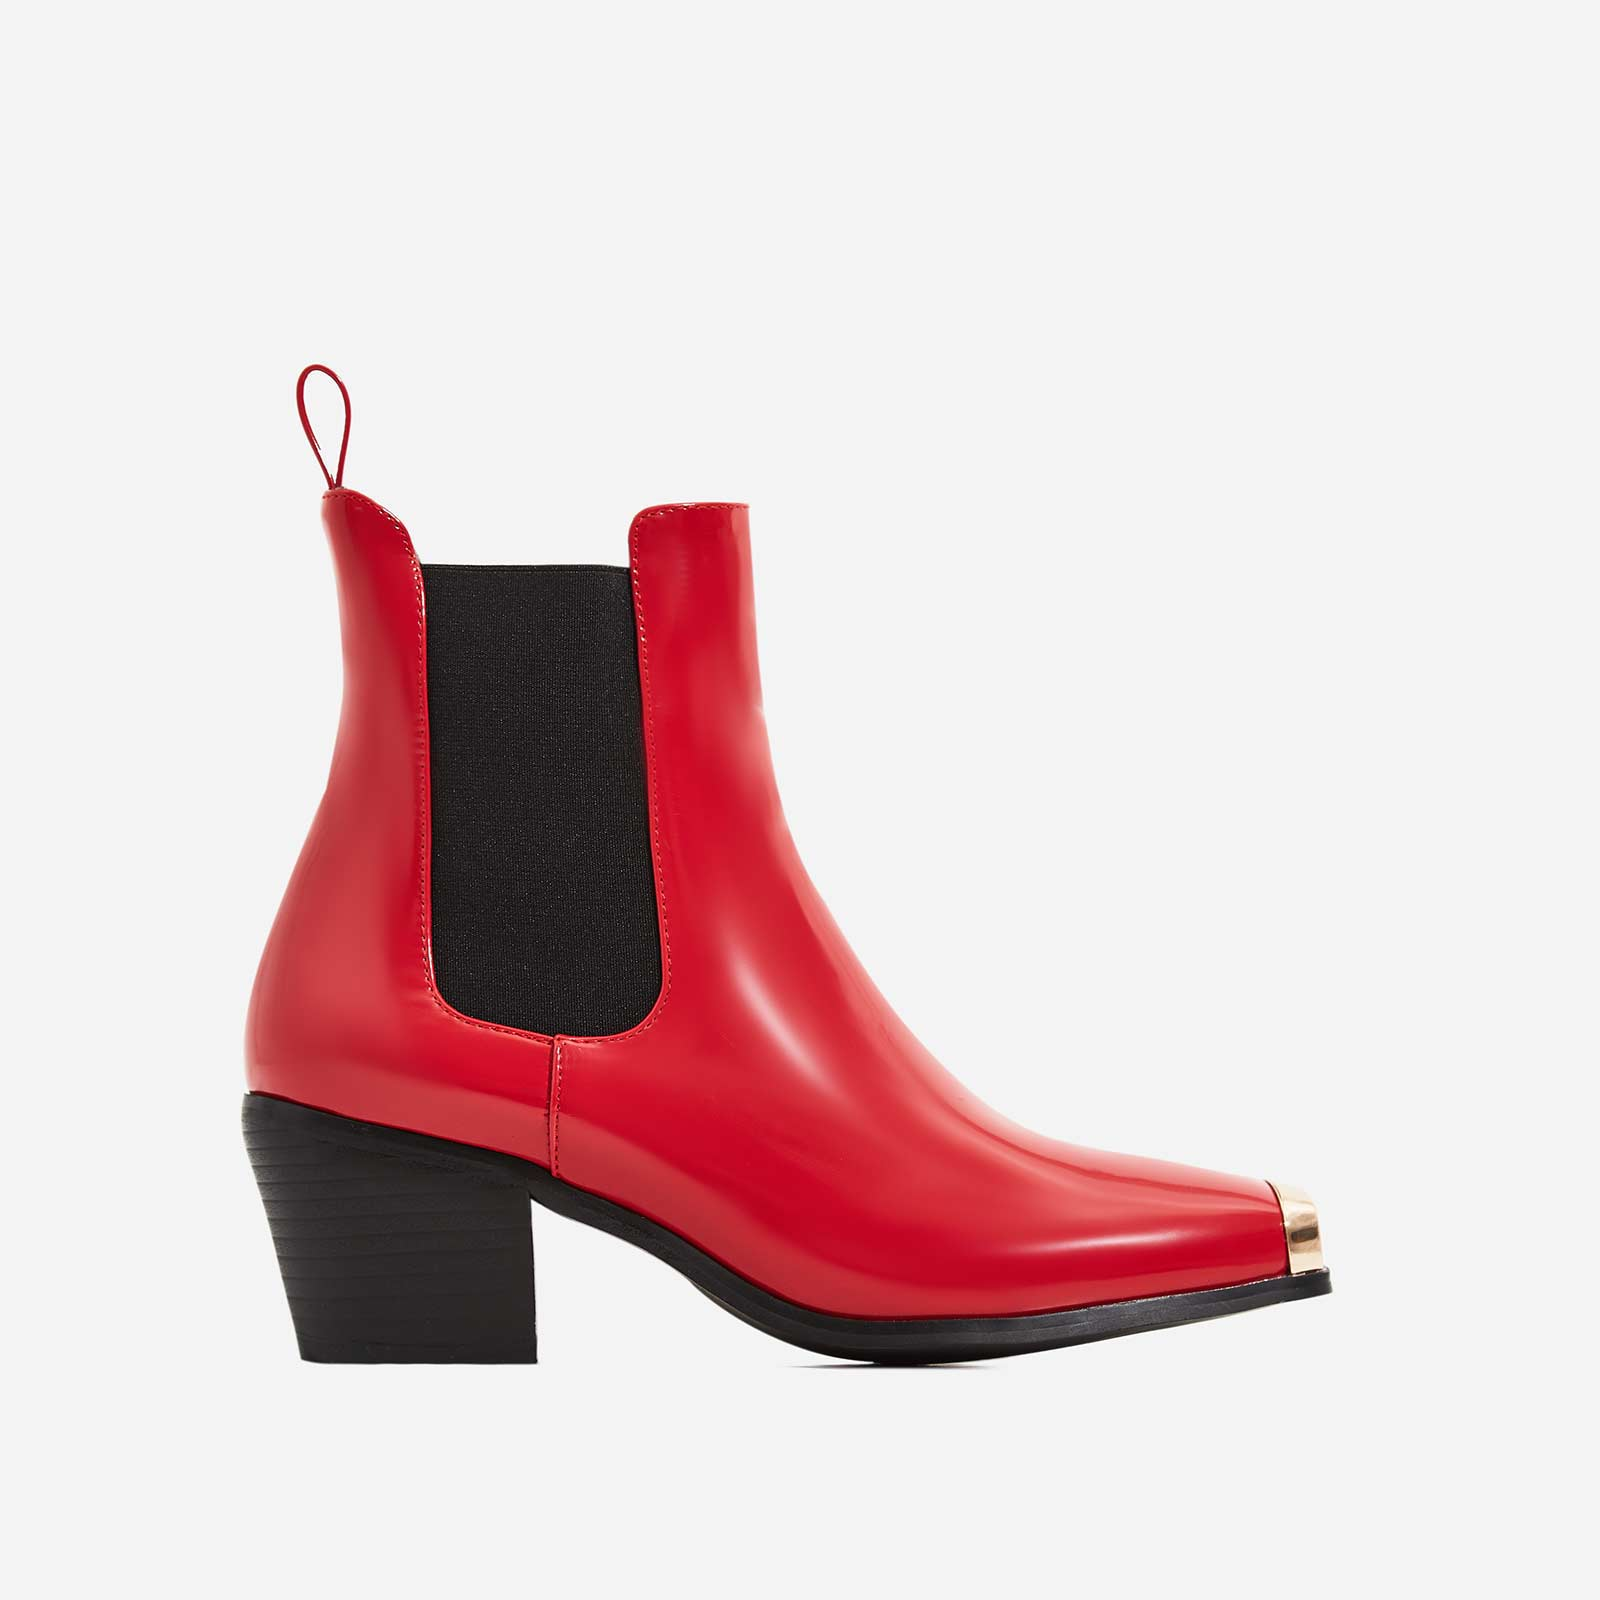 Darcy Toe Cap Western Ankle Boot In Red Patent